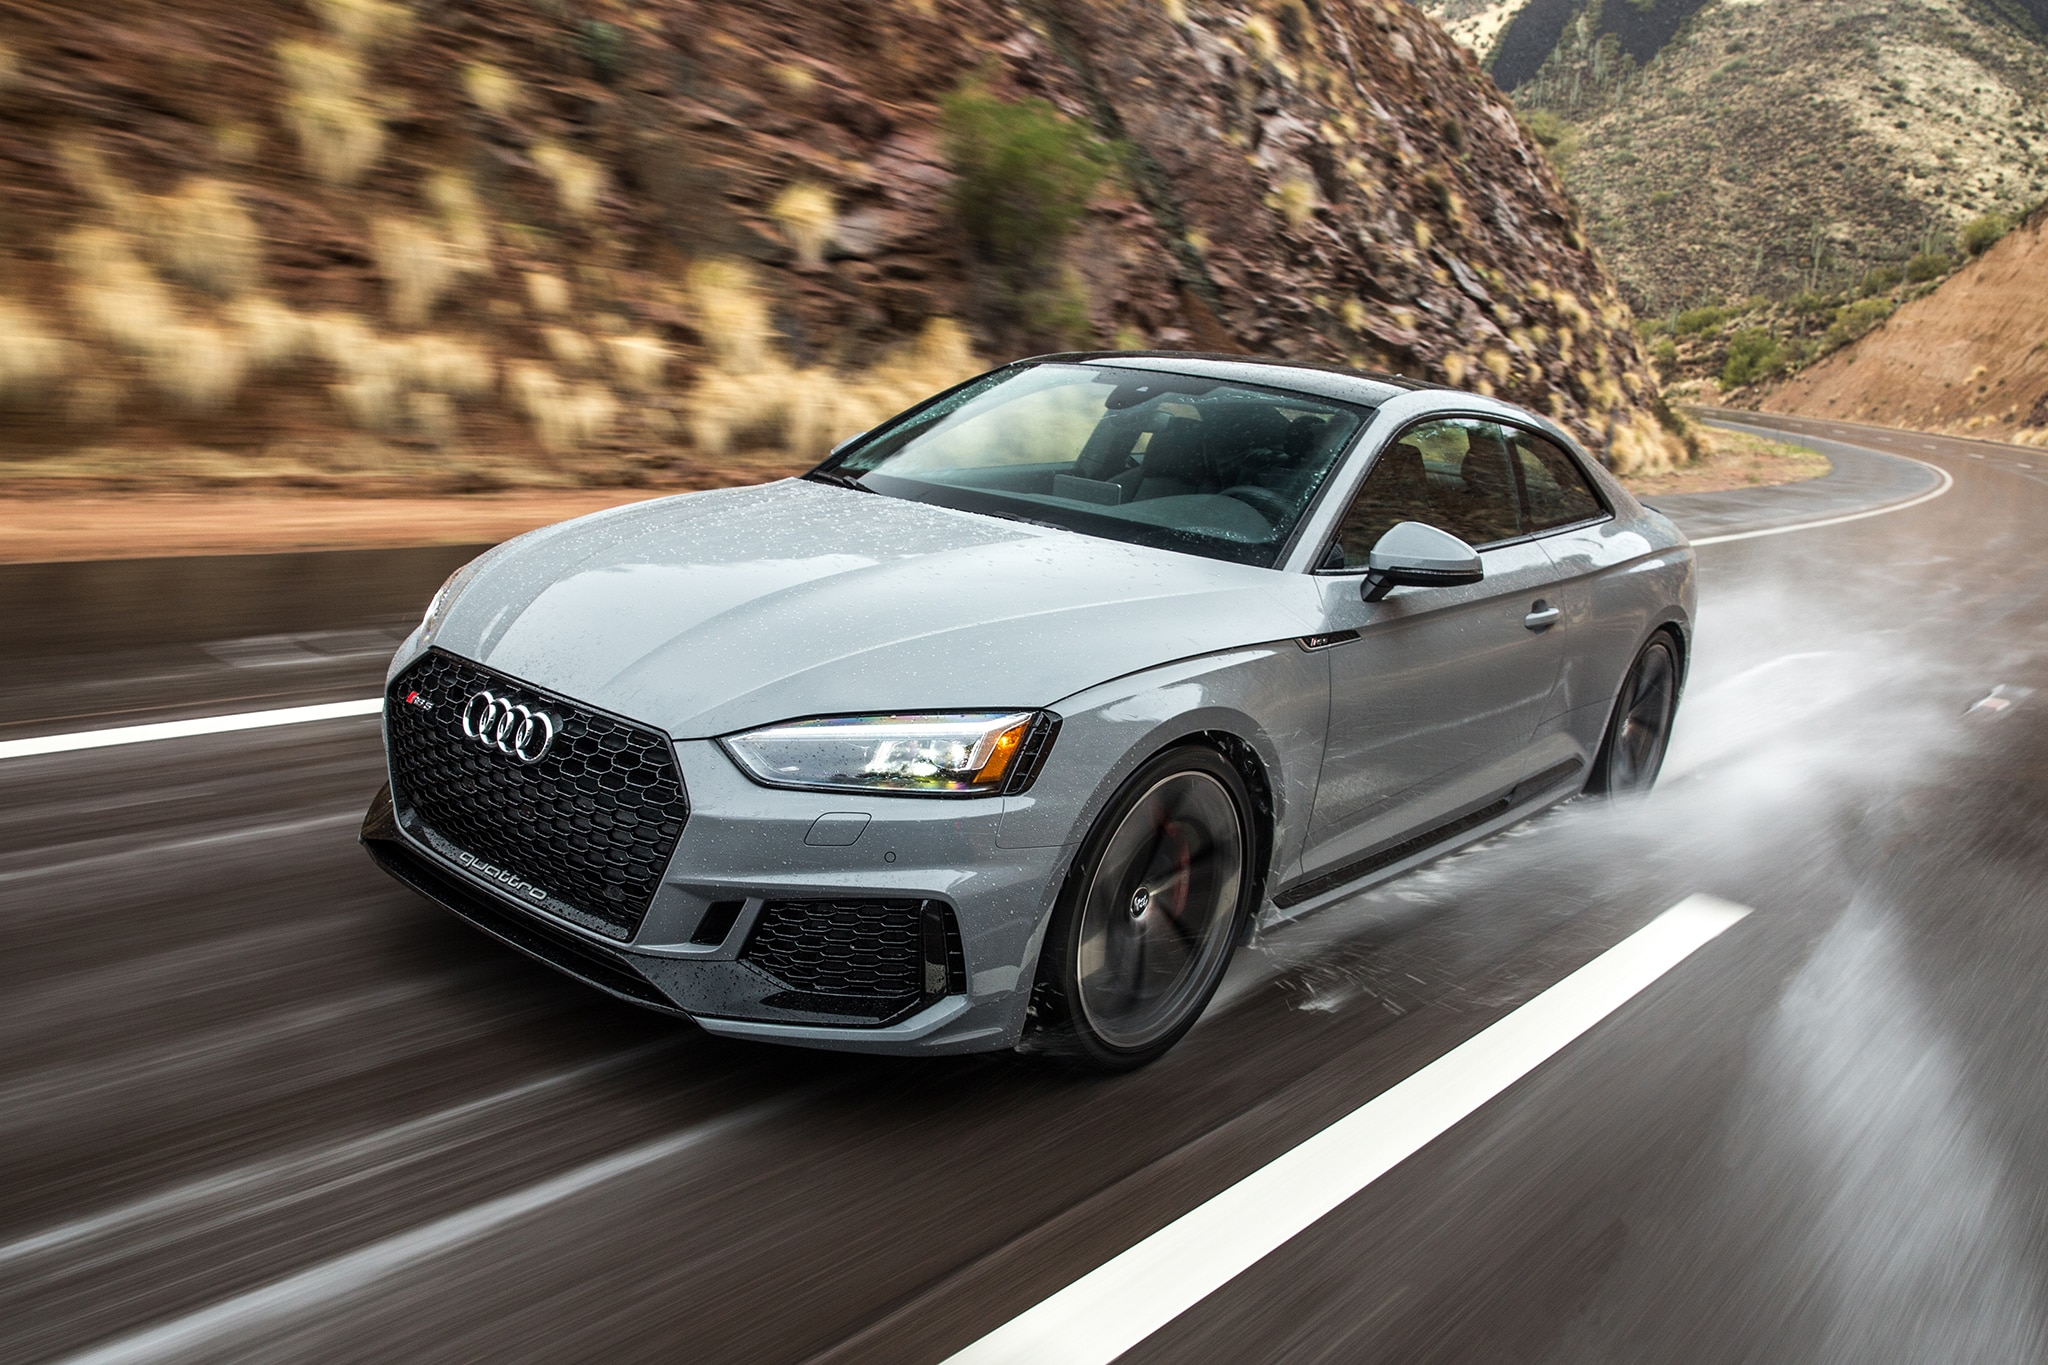 2018 Audi RS 5 Coupe Front Three Quarter In Motion 02